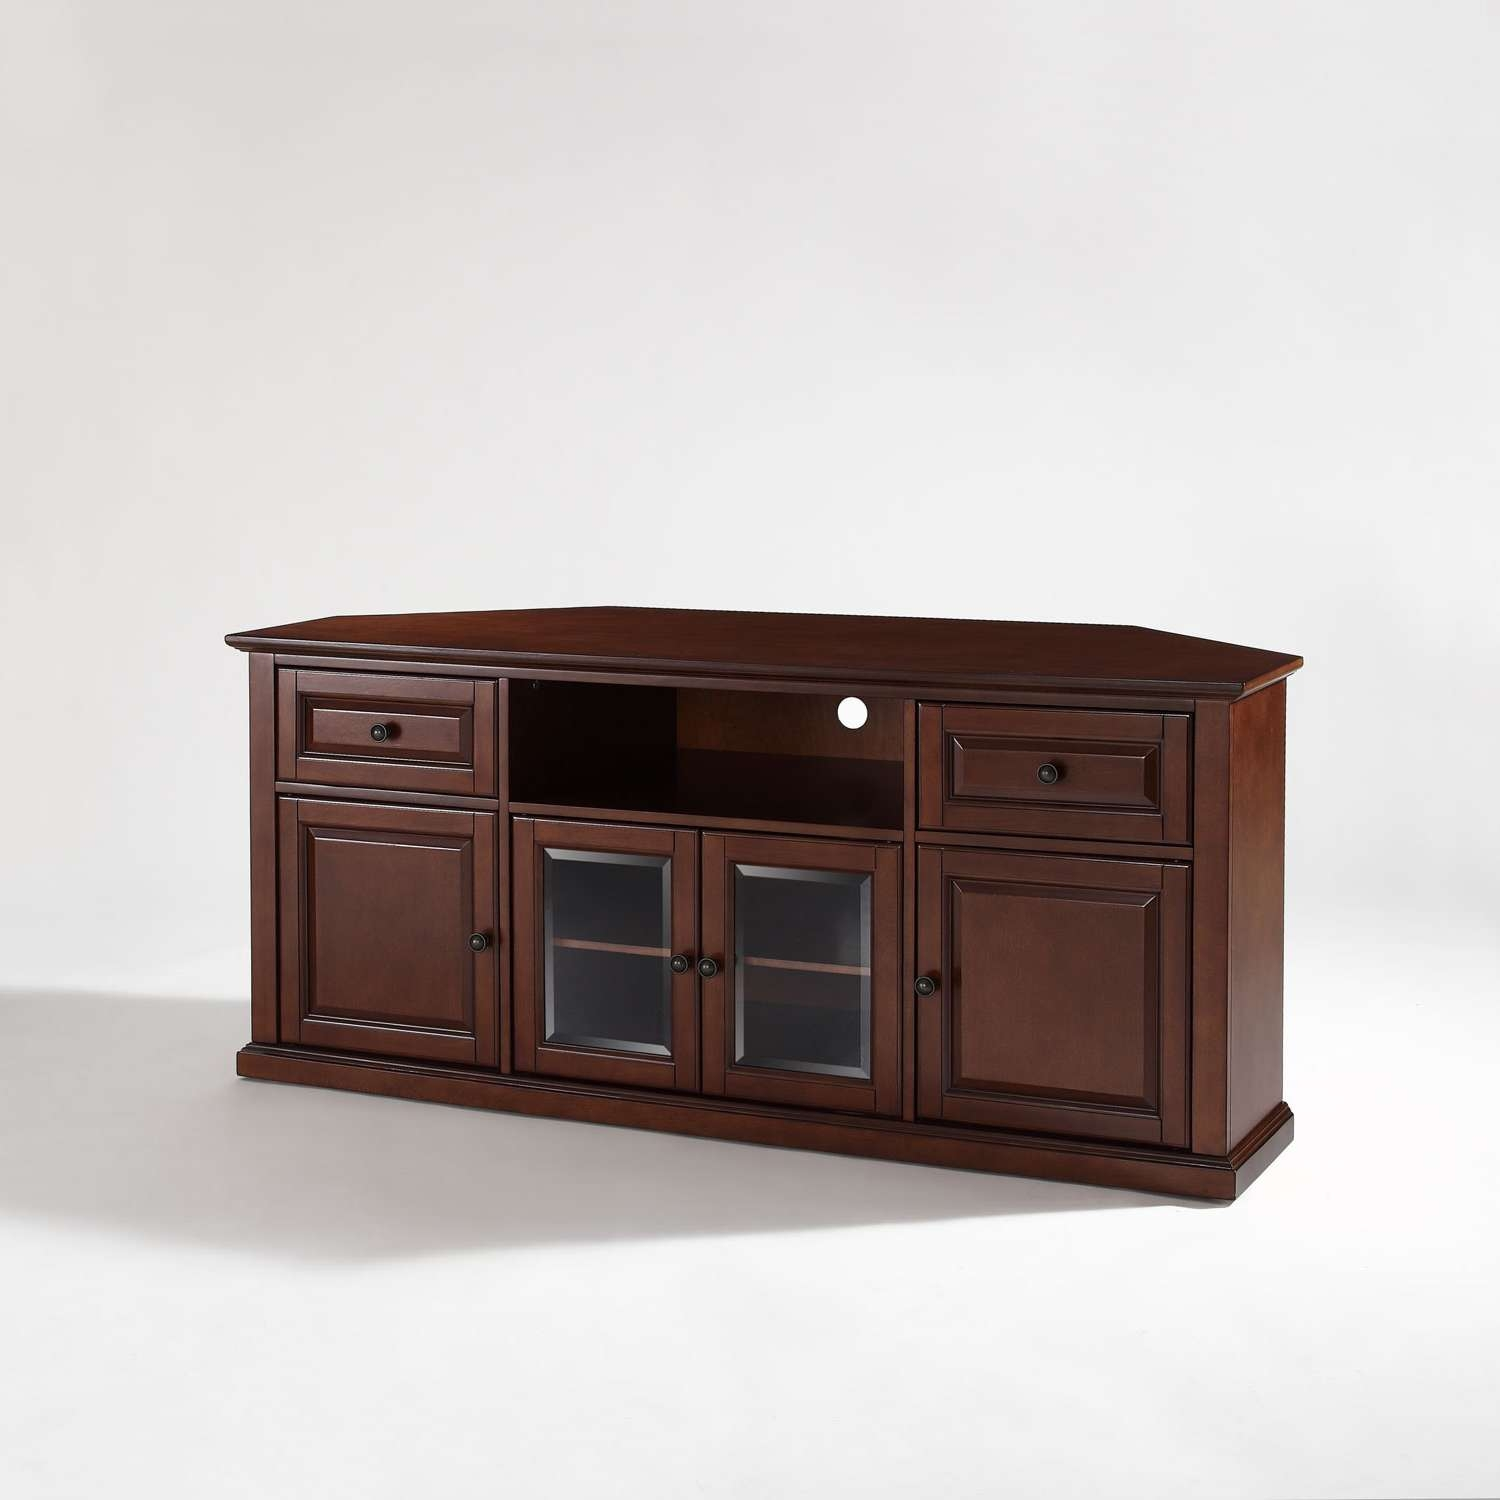 60 Inch Corner Tv Stand In Vintage Mahogany Crosley Furniture Regarding Mahogany Tv Stands (View 1 of 15)